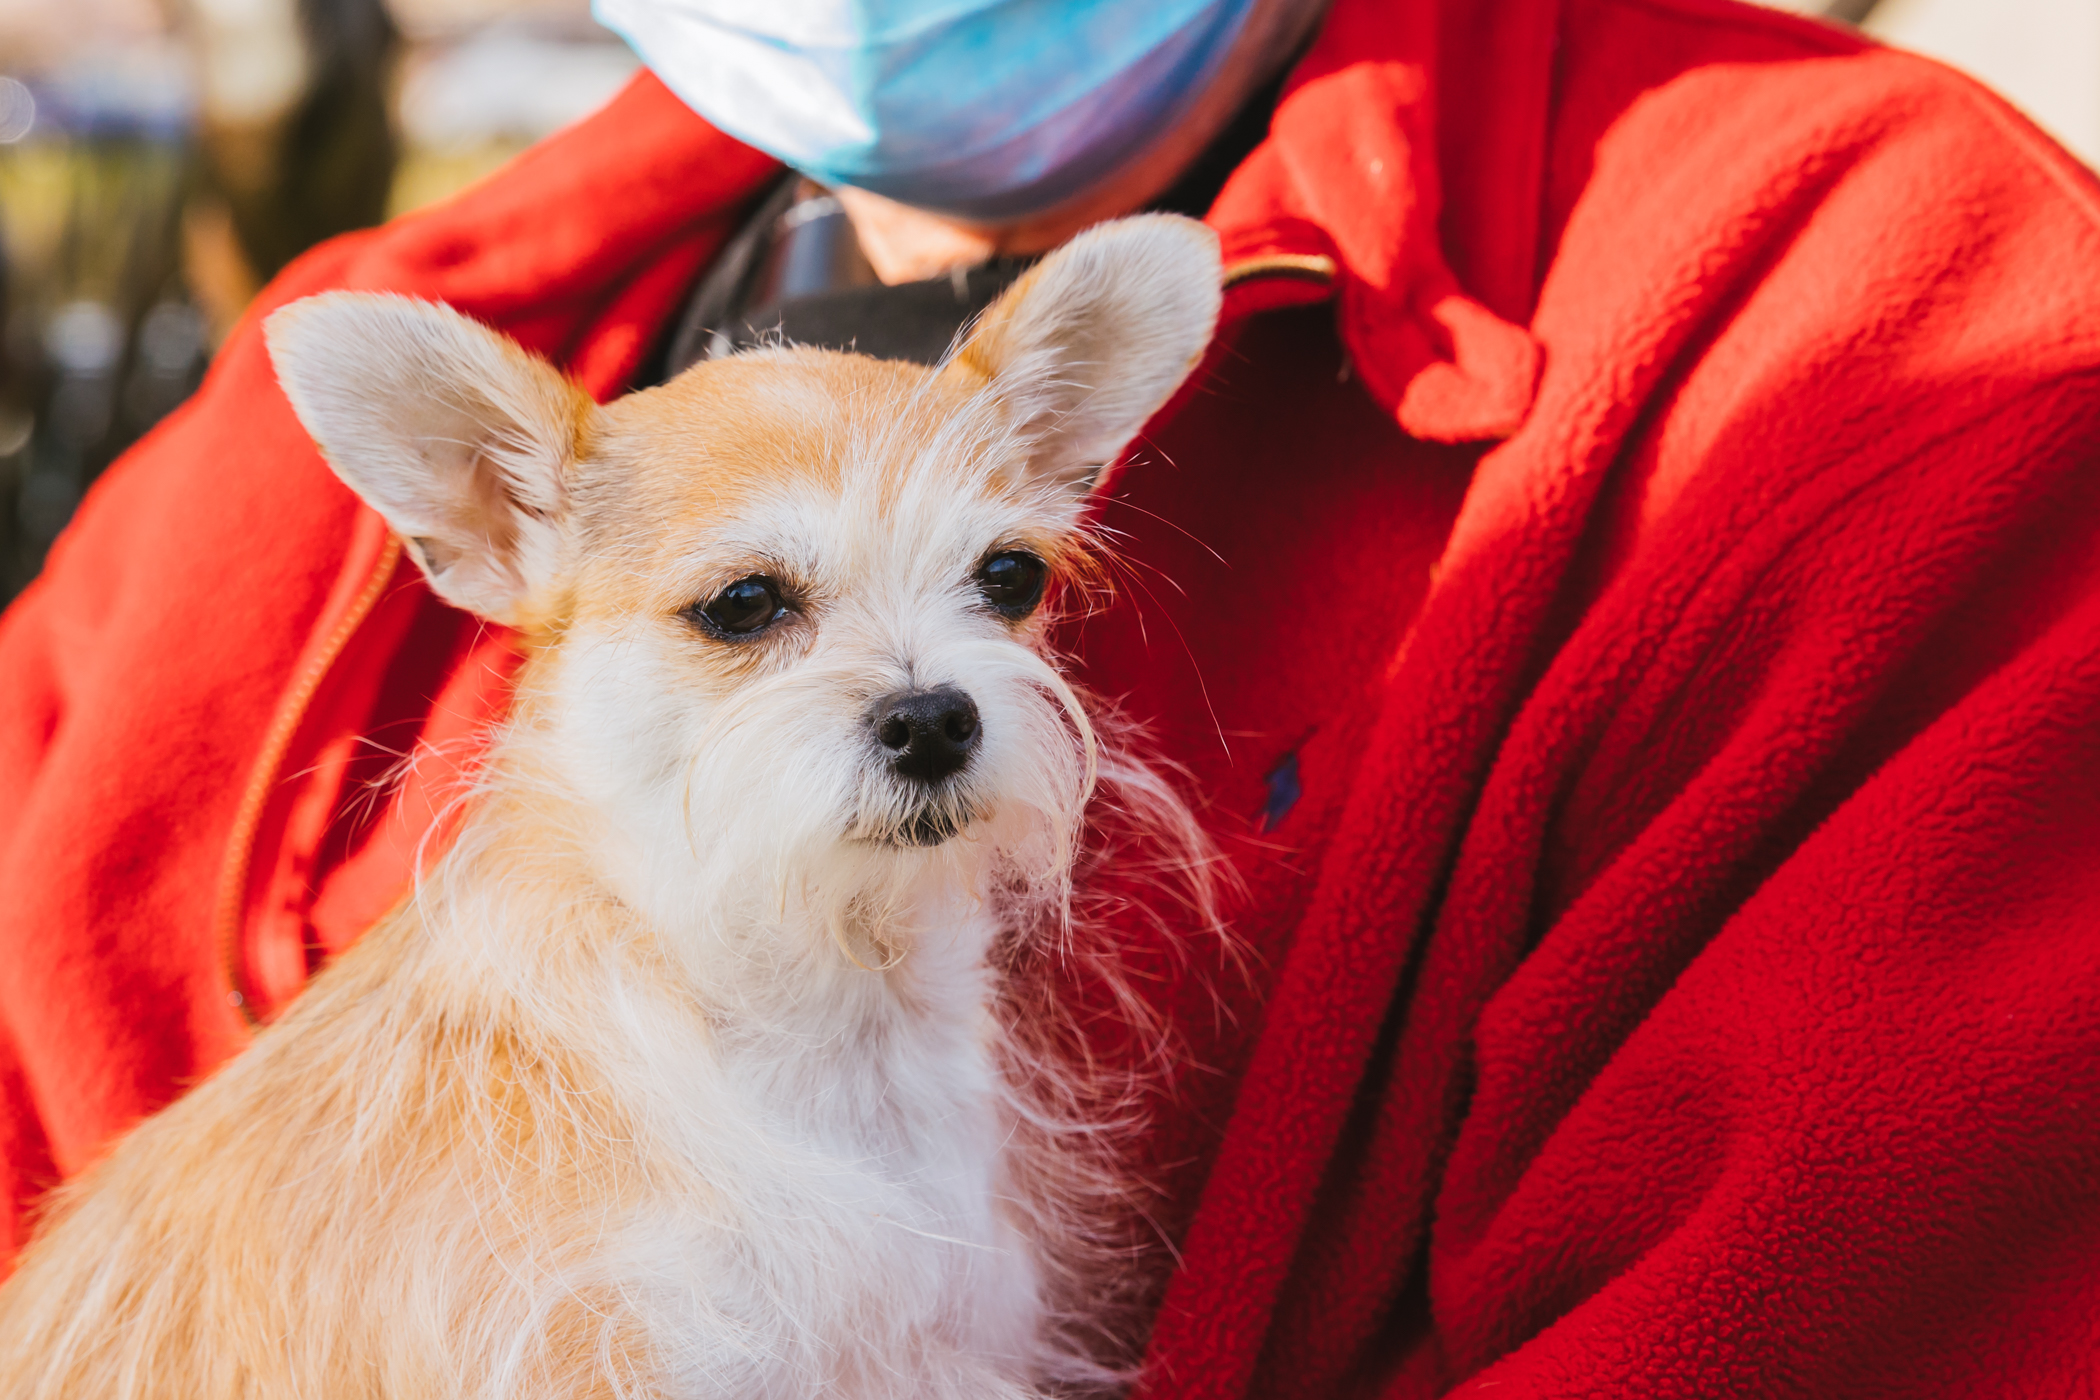 "Sweet little Ana Lewis is a 3-year-old Chihuahua-Yorkie who LOVES to ride in the car, go on shopping trips, and is inseparable from her dad. She doesn't really like other doggos, much prefers her humans.{&nbsp;}<a  href=""http://seattlerefined.com/ruffined"" target=""_blank"">The RUFFined Spotlight</a>{&nbsp;}is a weekly profile of local pets living and loving life in the PNW. If you or someone you know has a pet you'd like featured, email us at{&nbsp;}, and your furbaby could be the next spotlighted! (Image: Sunita Martini / Seattle Refined)"